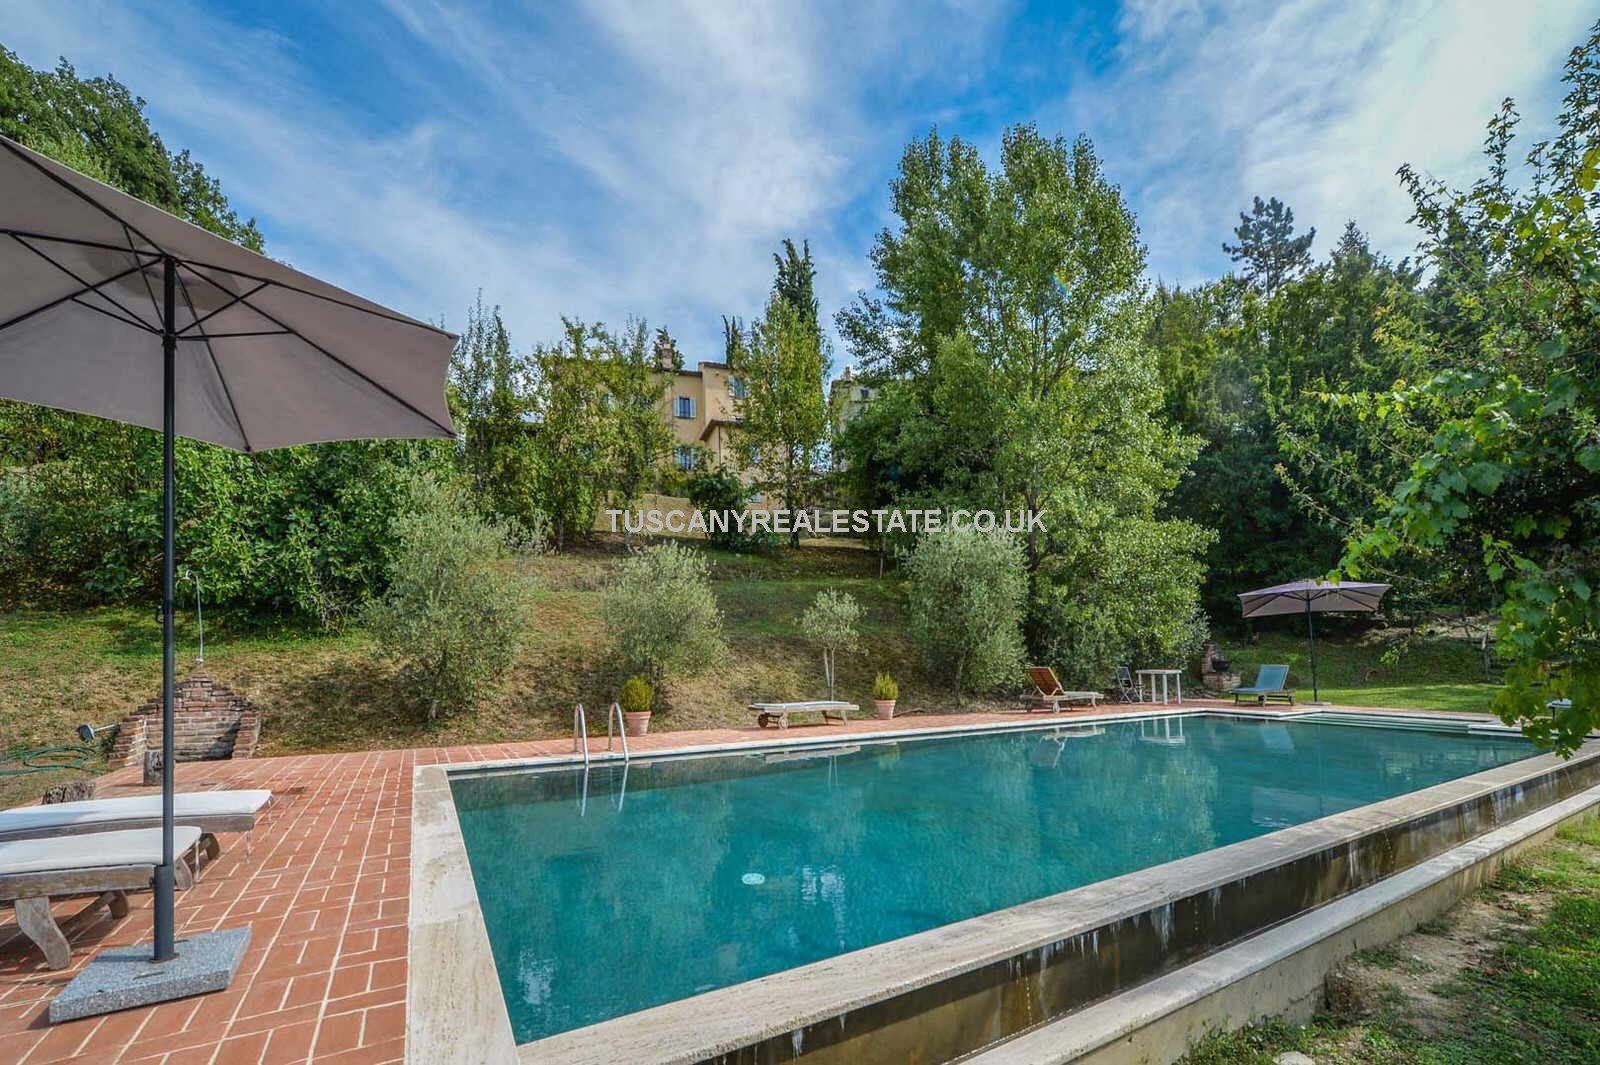 External view of pool and Tuscan villa